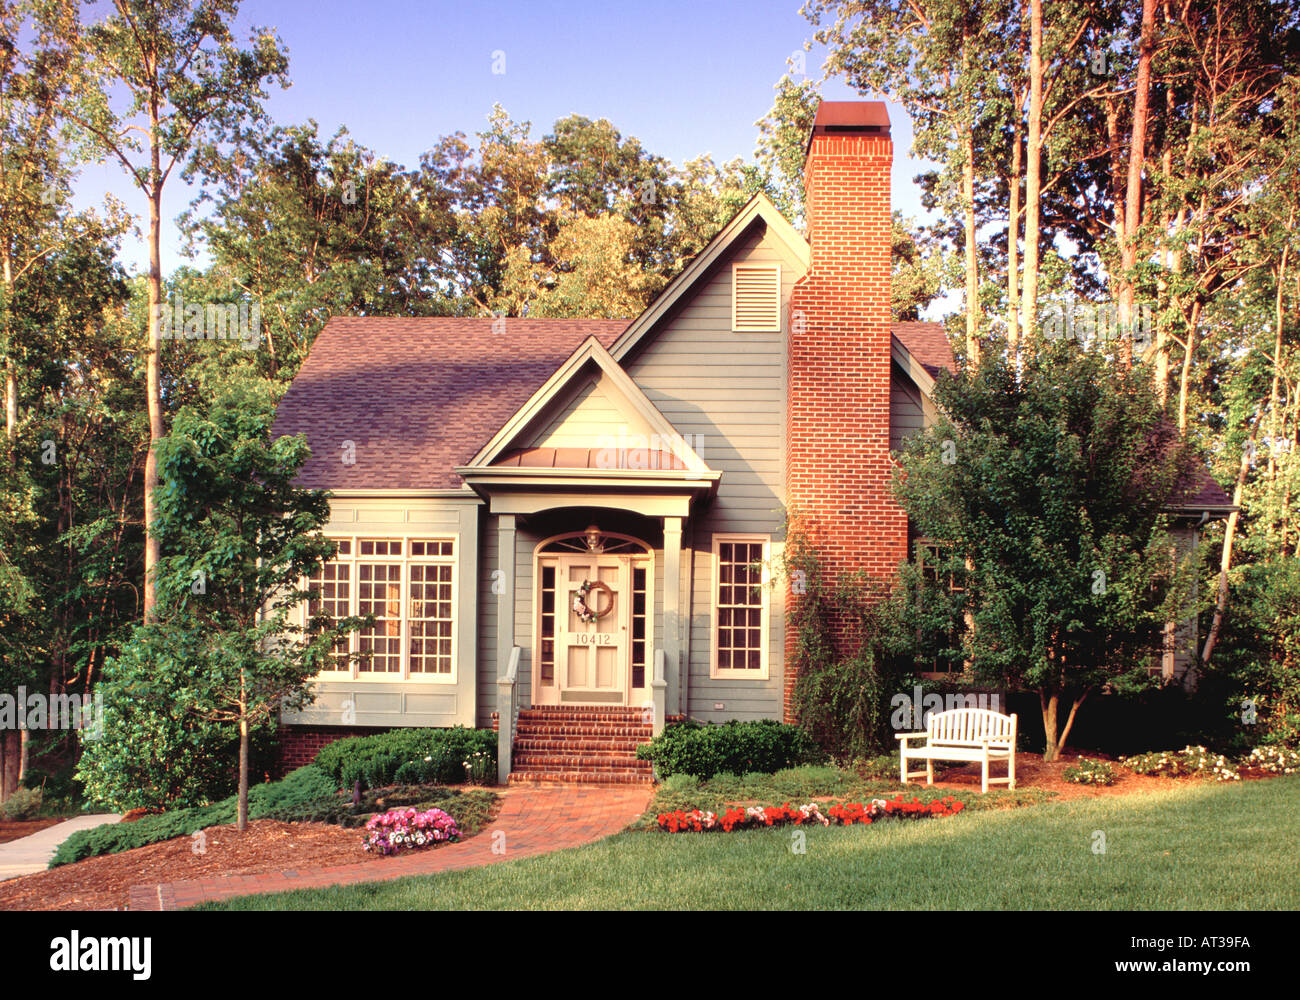 two story brick house landscaped lawn stock photos two. Black Bedroom Furniture Sets. Home Design Ideas